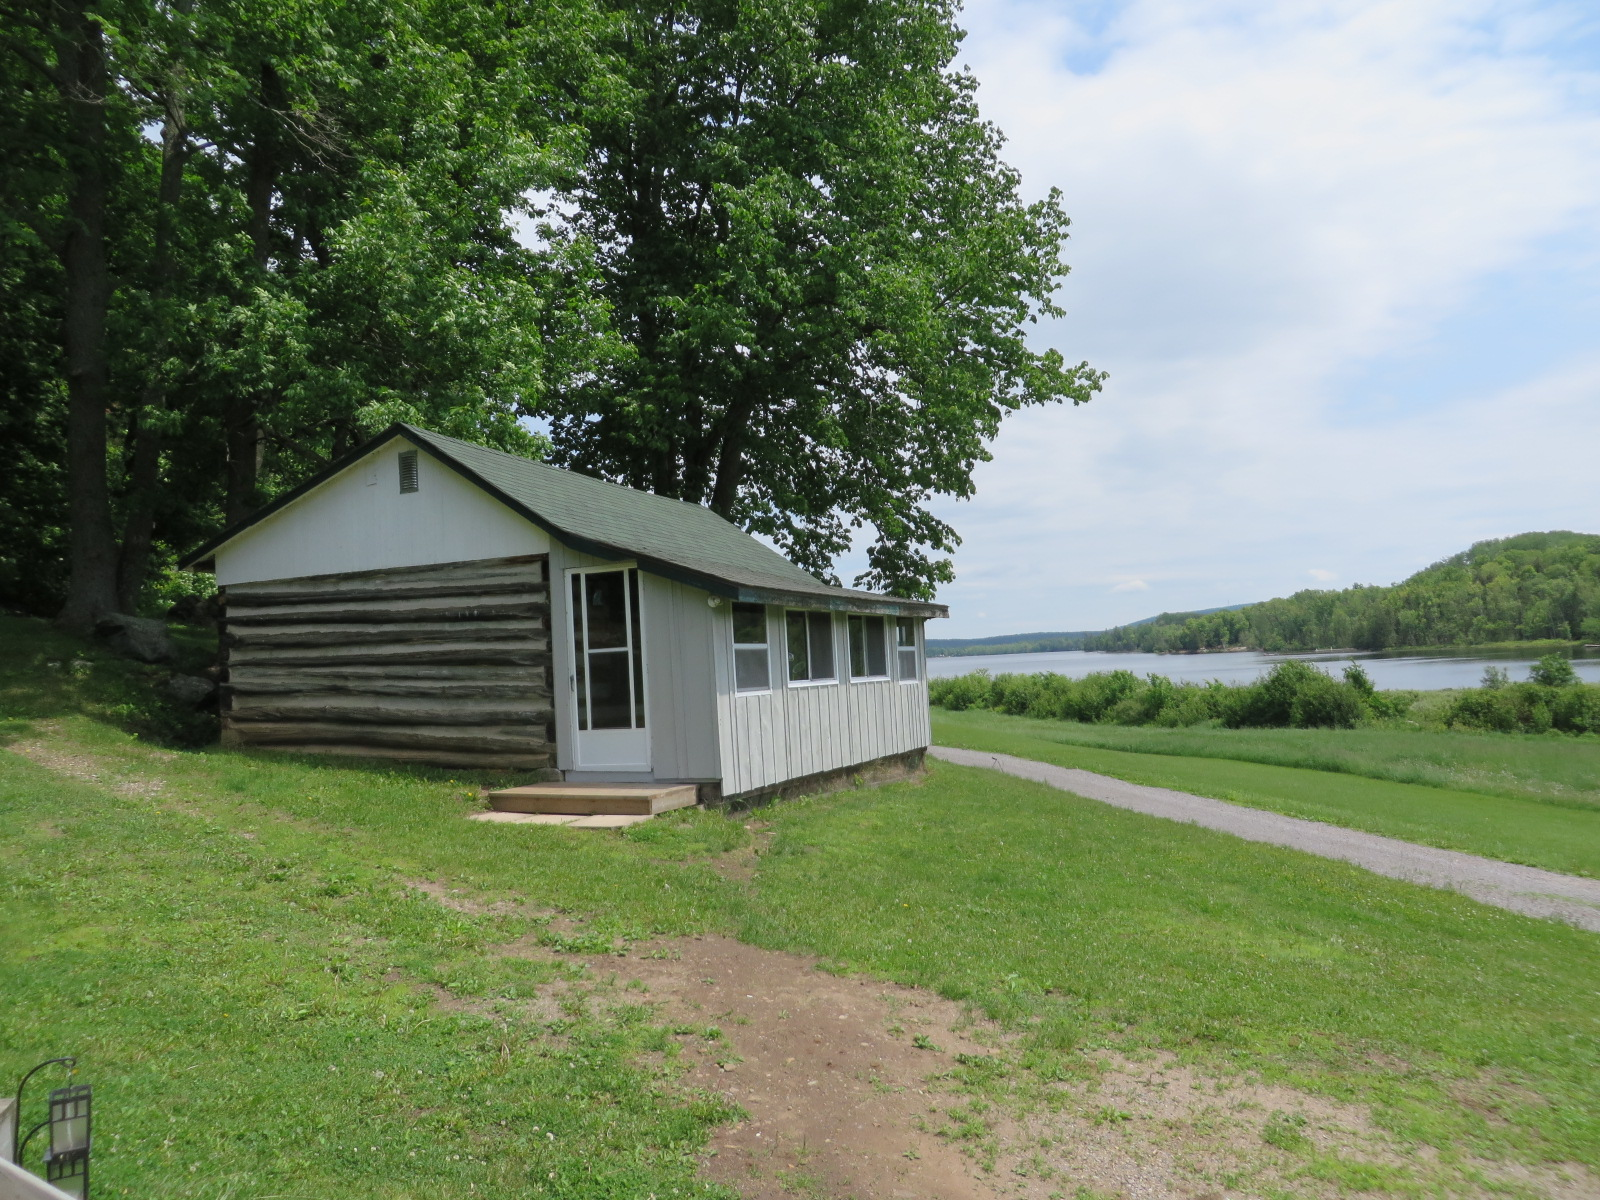 Lakefront Cabin Rental Surrounded by Nature in Renfrew